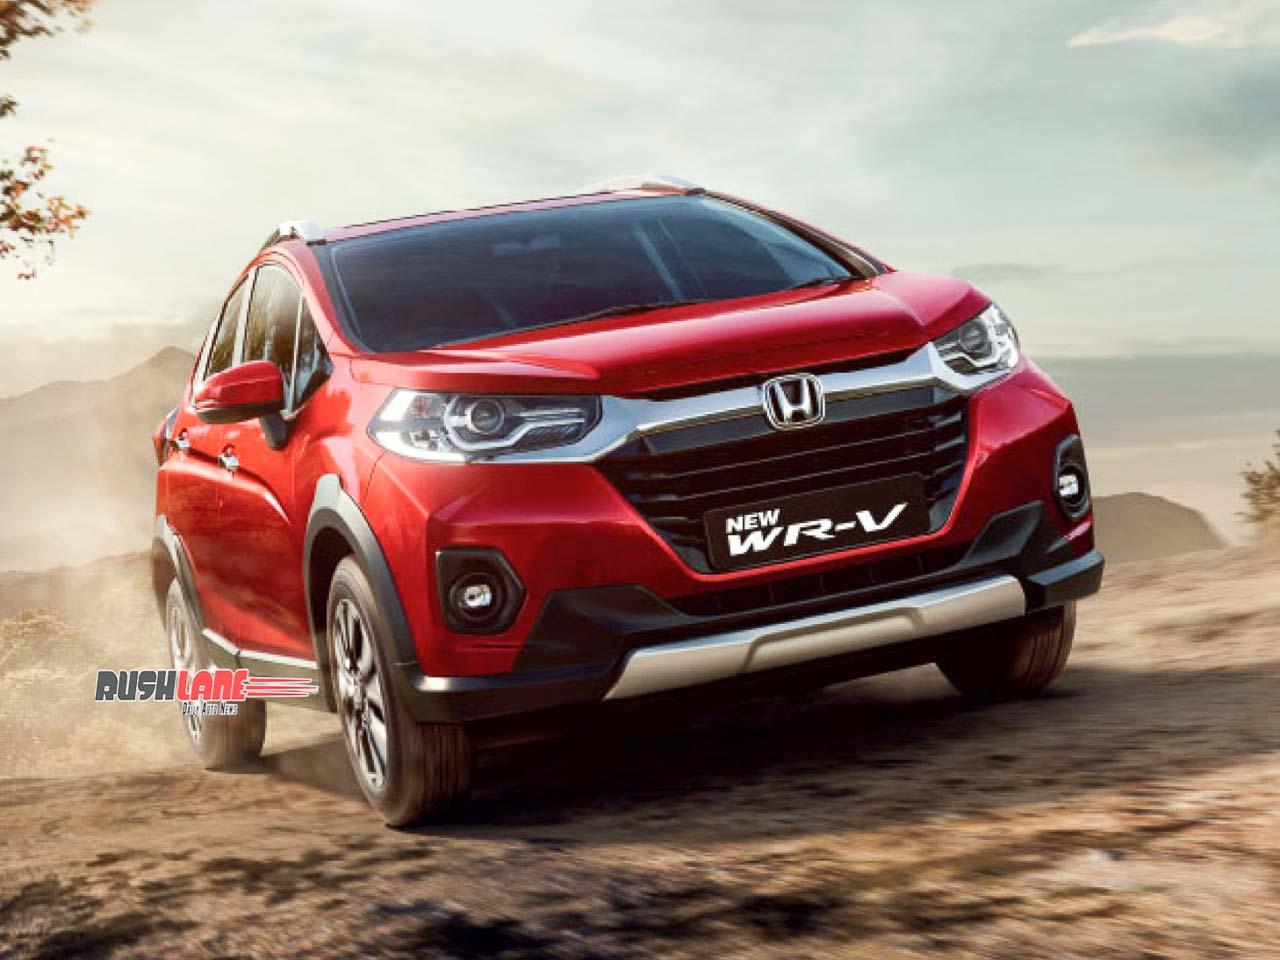 New Honda WRV Facelift Crossover Launch Price Rs 8.5 L to Rs 11 L